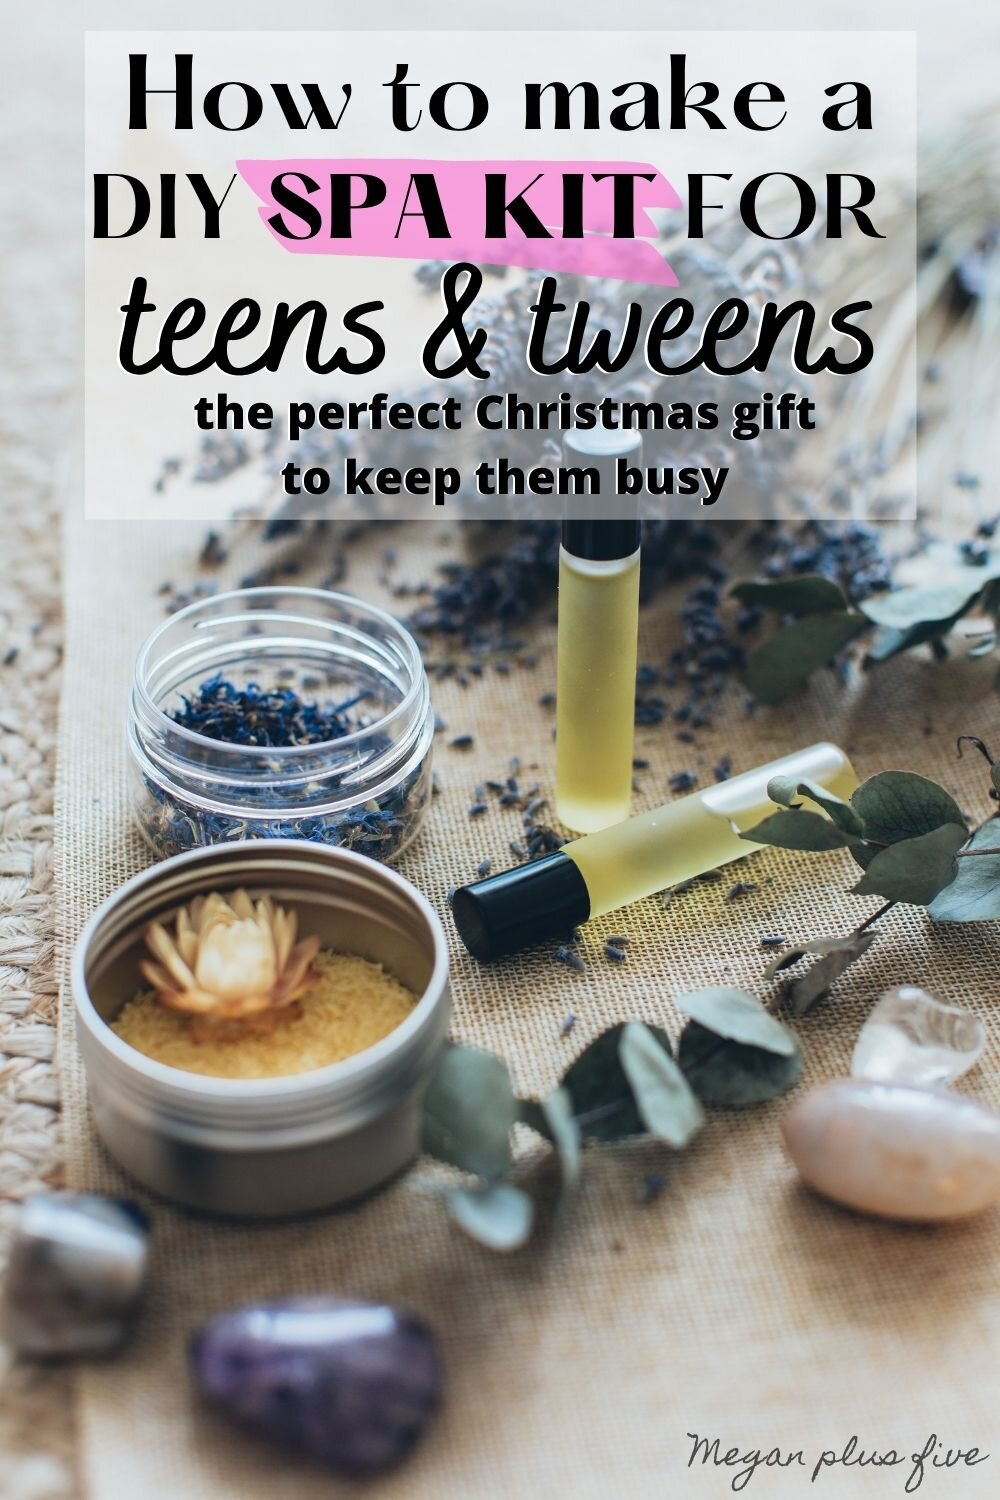 DIY spa kits for teens. Great gift to give teens and tweens for Christmas is a DIY spa experiment recipe kit. Let them make their own lotions, bathbombs, essential oil sprays, soaps, face masks, and more.